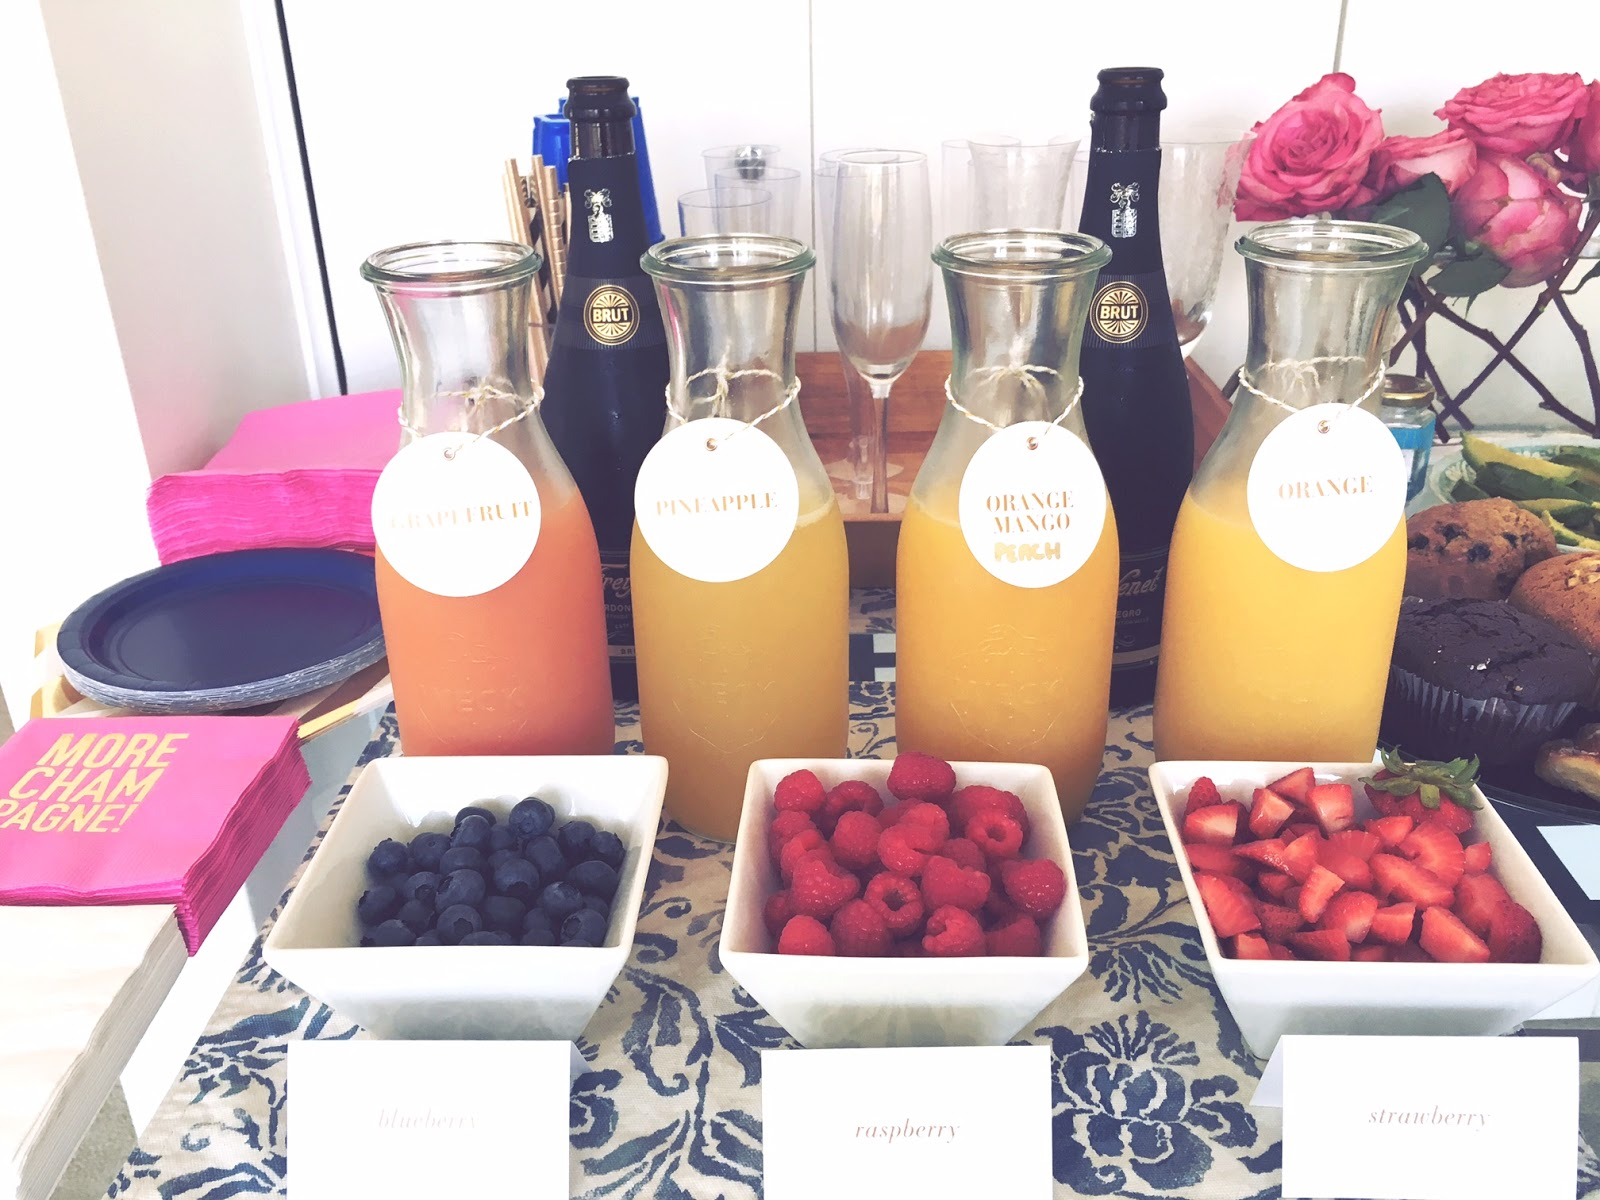 Juices and fruit for mimosa bar